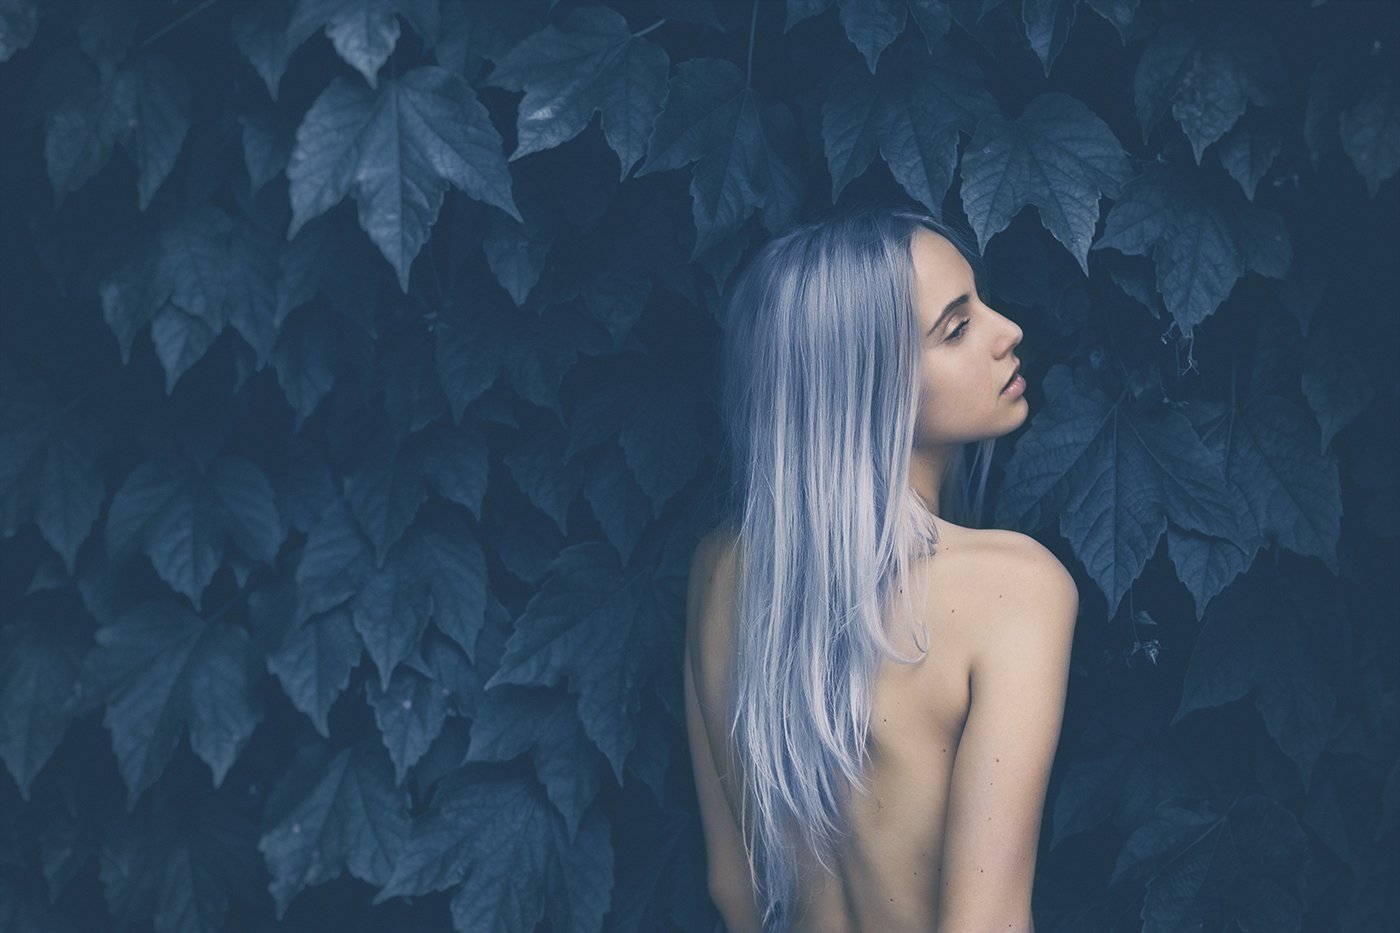 model,beauty,nude,body,leaves,nature,colors,blue,, roberto demaria